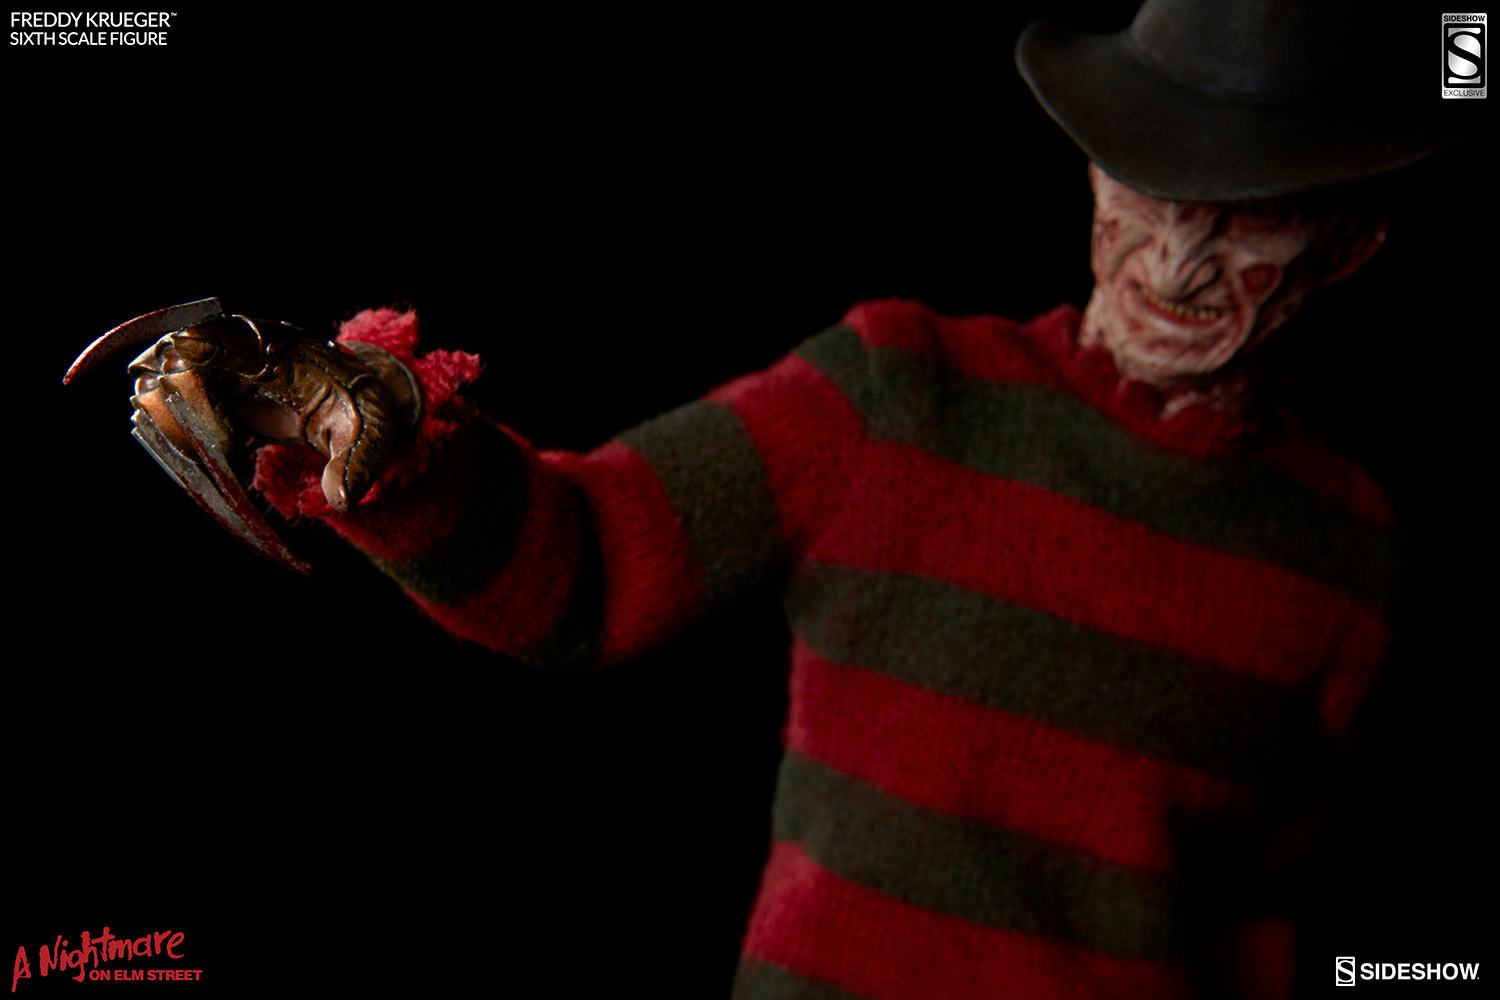 freddy-krueger-sixth-scale-figure-sideshow-05